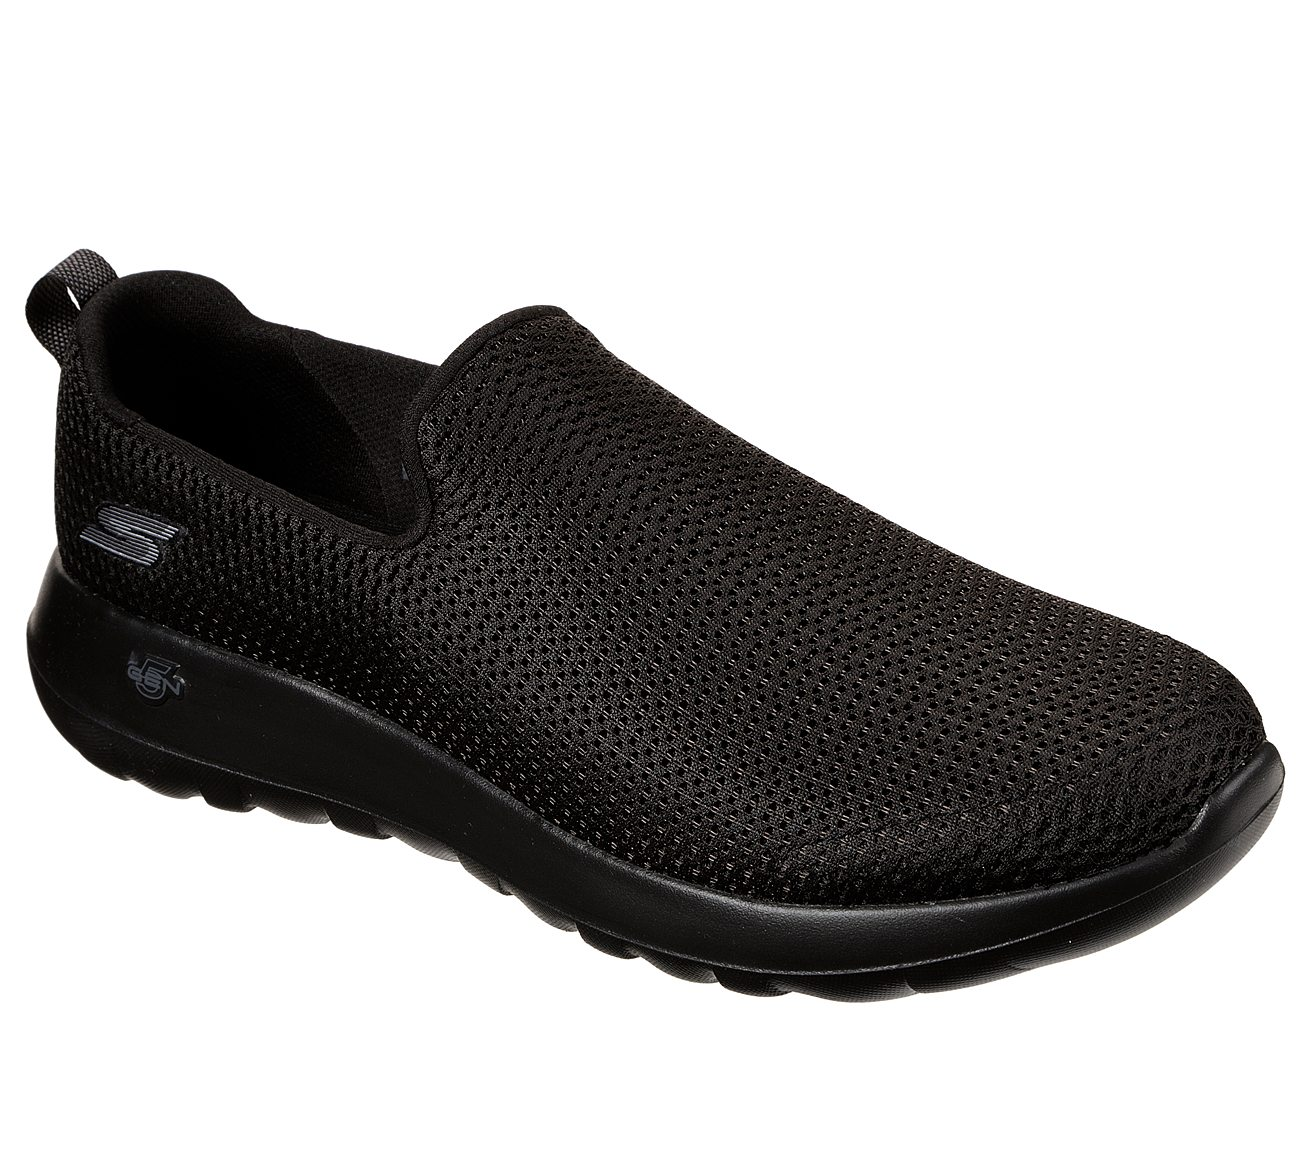 Buy SKECHERS Skechers GOwalk Max